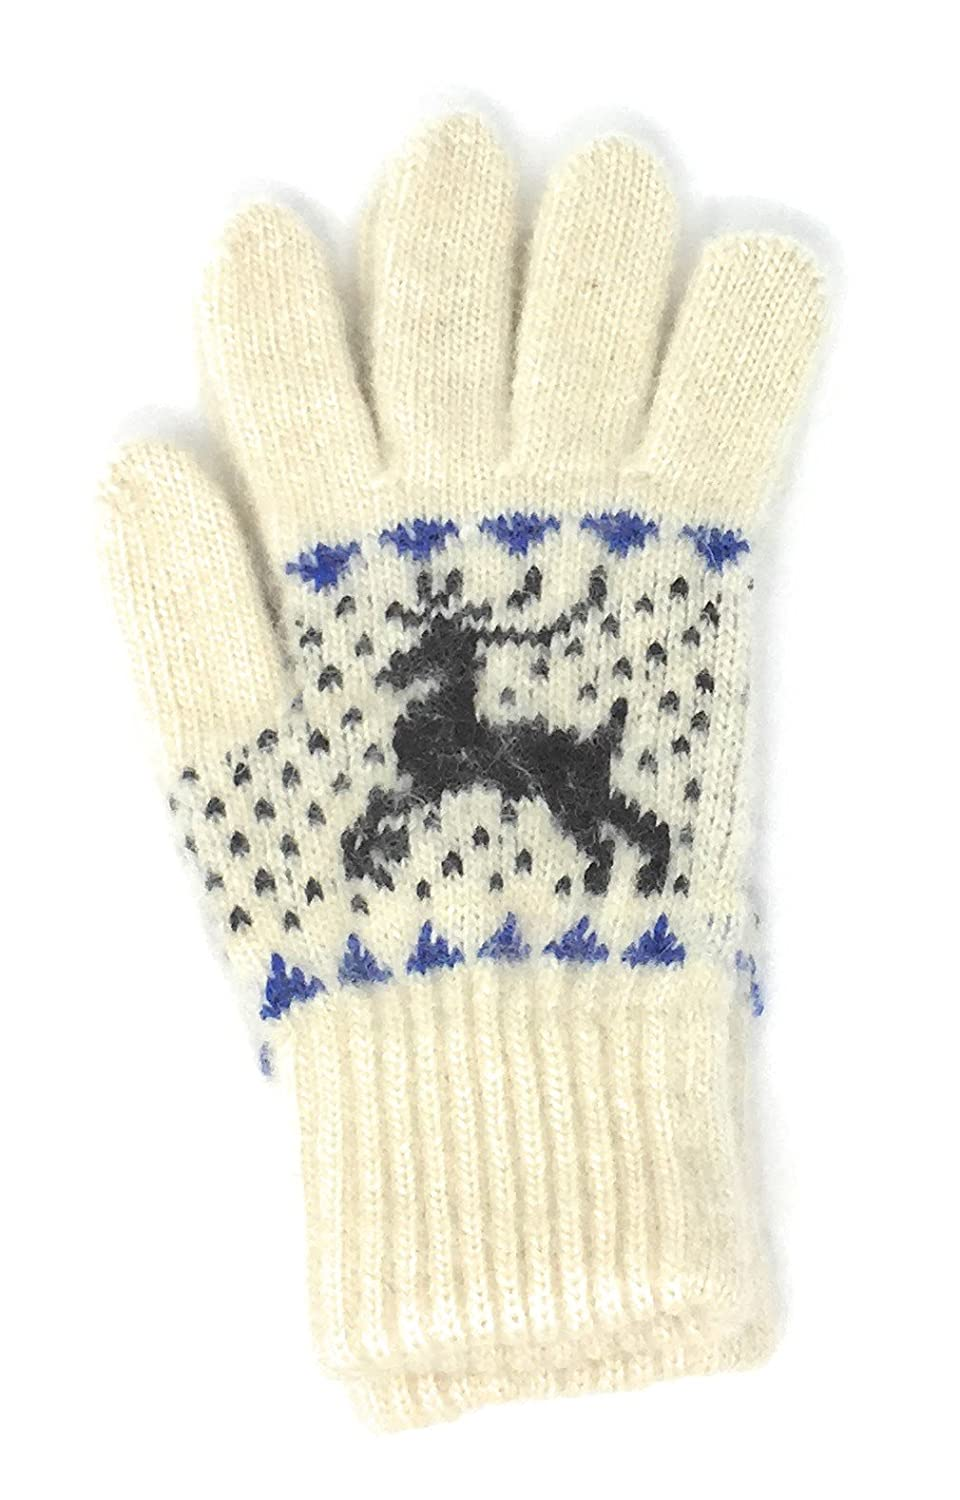 Reindeer Design Cute Natural Lambswool Warm Cozy Winter Gloves by Granny's Knitwear Granny' s Knitwear